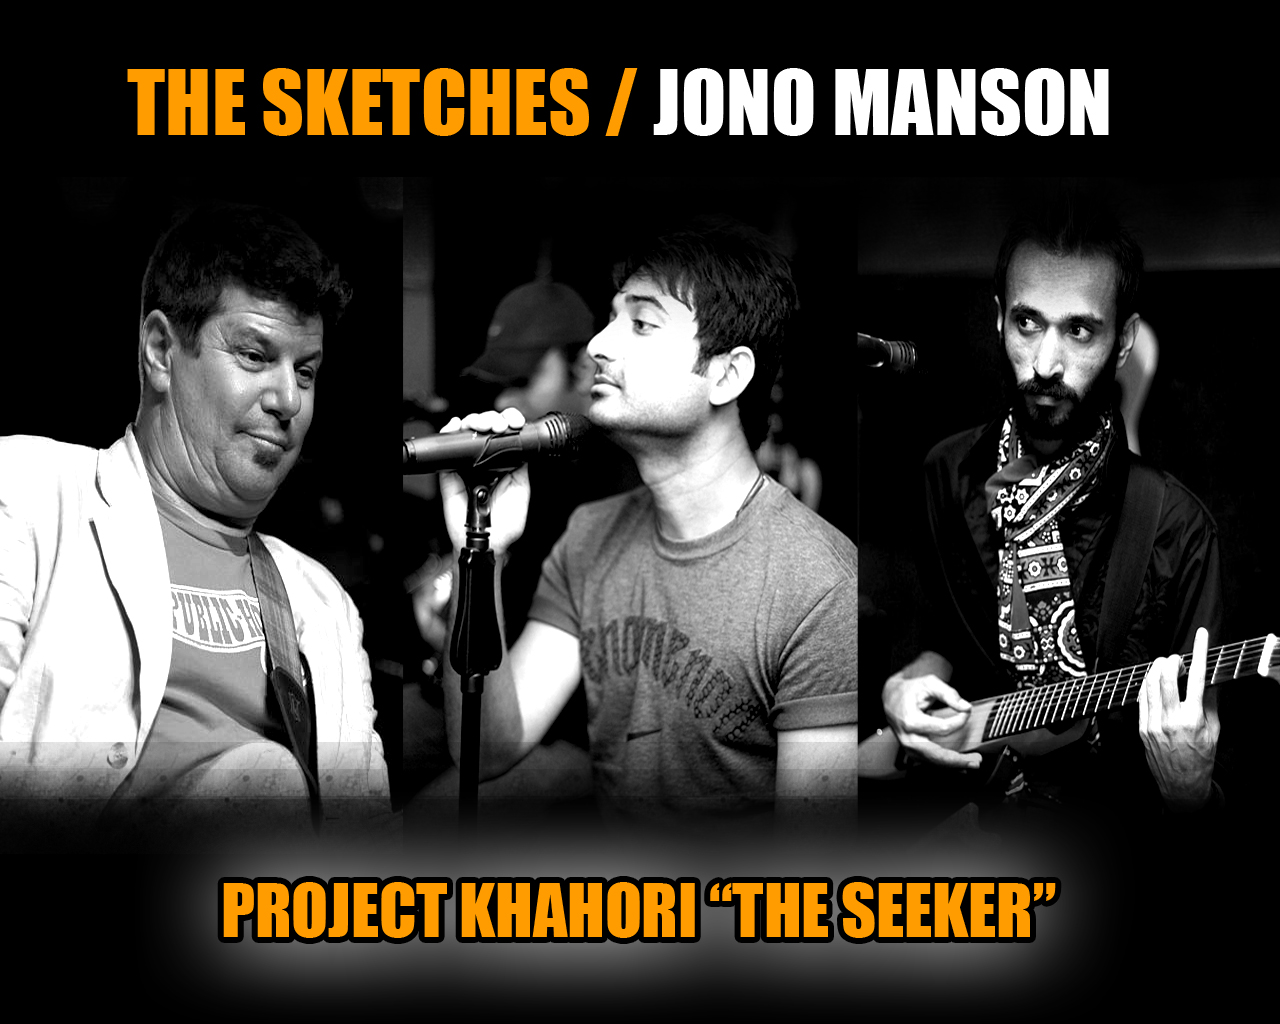 The Sketches Jono Manson Khahori Full Song